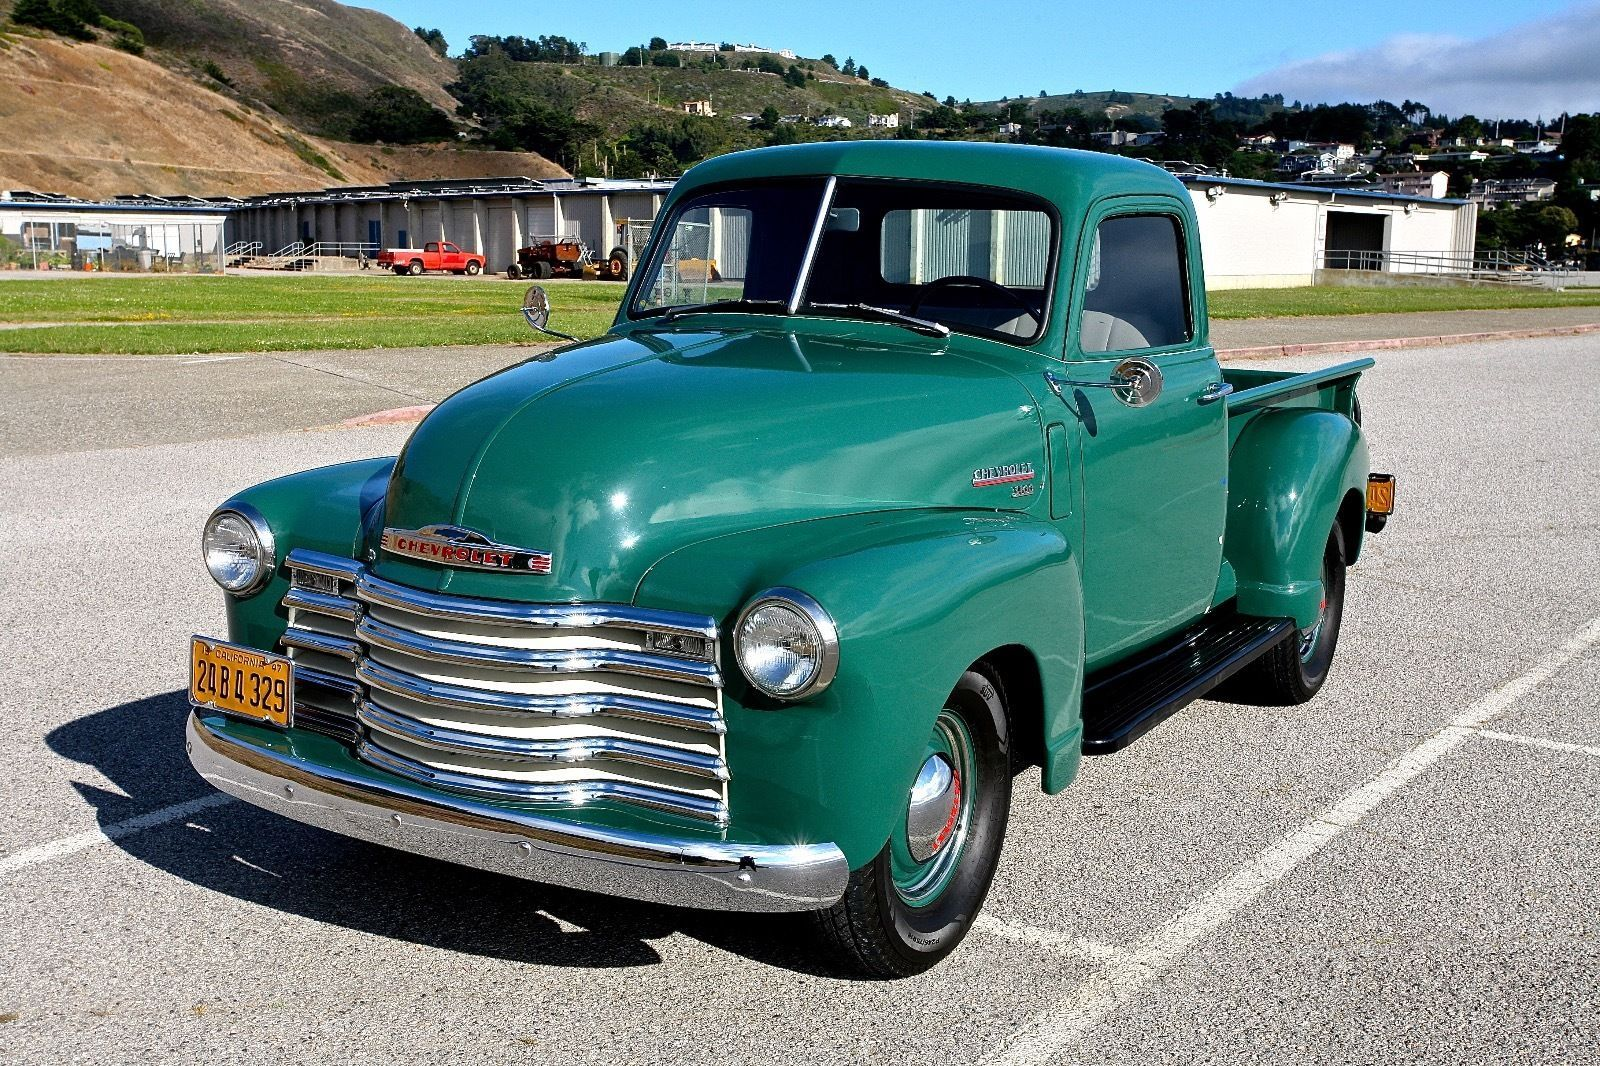 Pickup 1949 chevrolet pickup : Cool Chevrolet 2017: 1949 Chevrolet Other Pickups 1949 Chevrolet ...